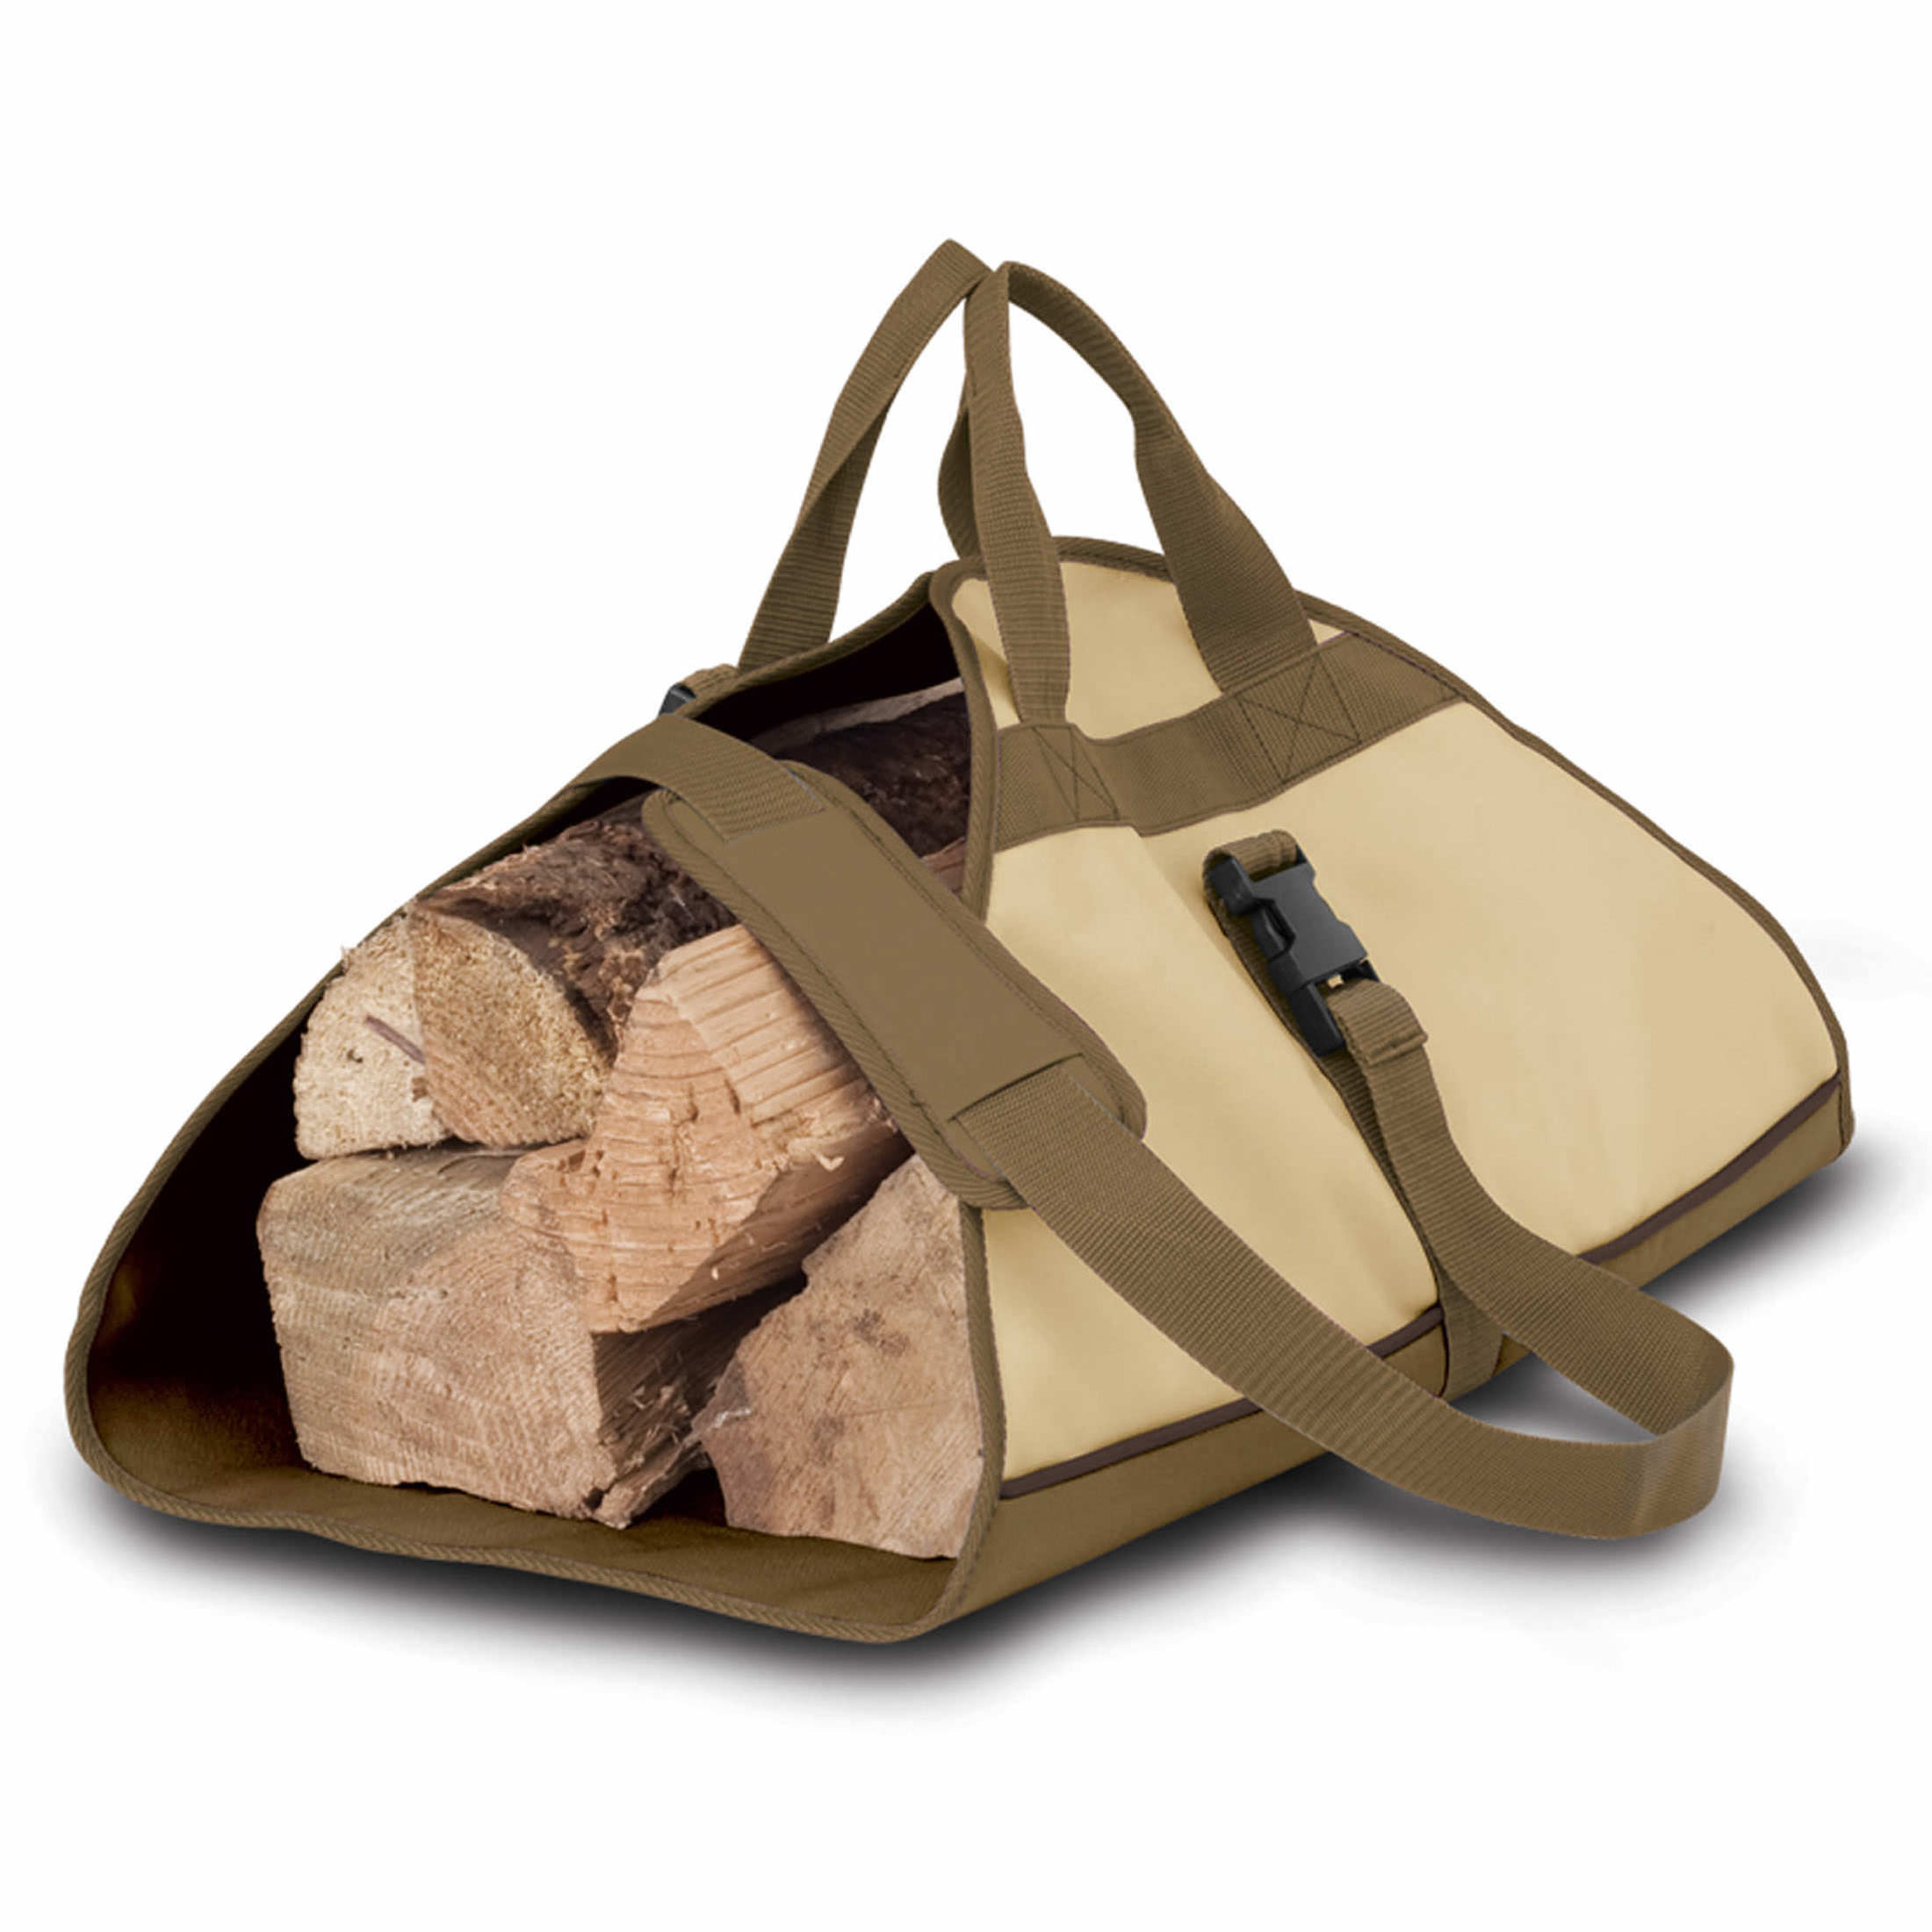 Classic Accessories Patio Veranda Log Carrier Pebble